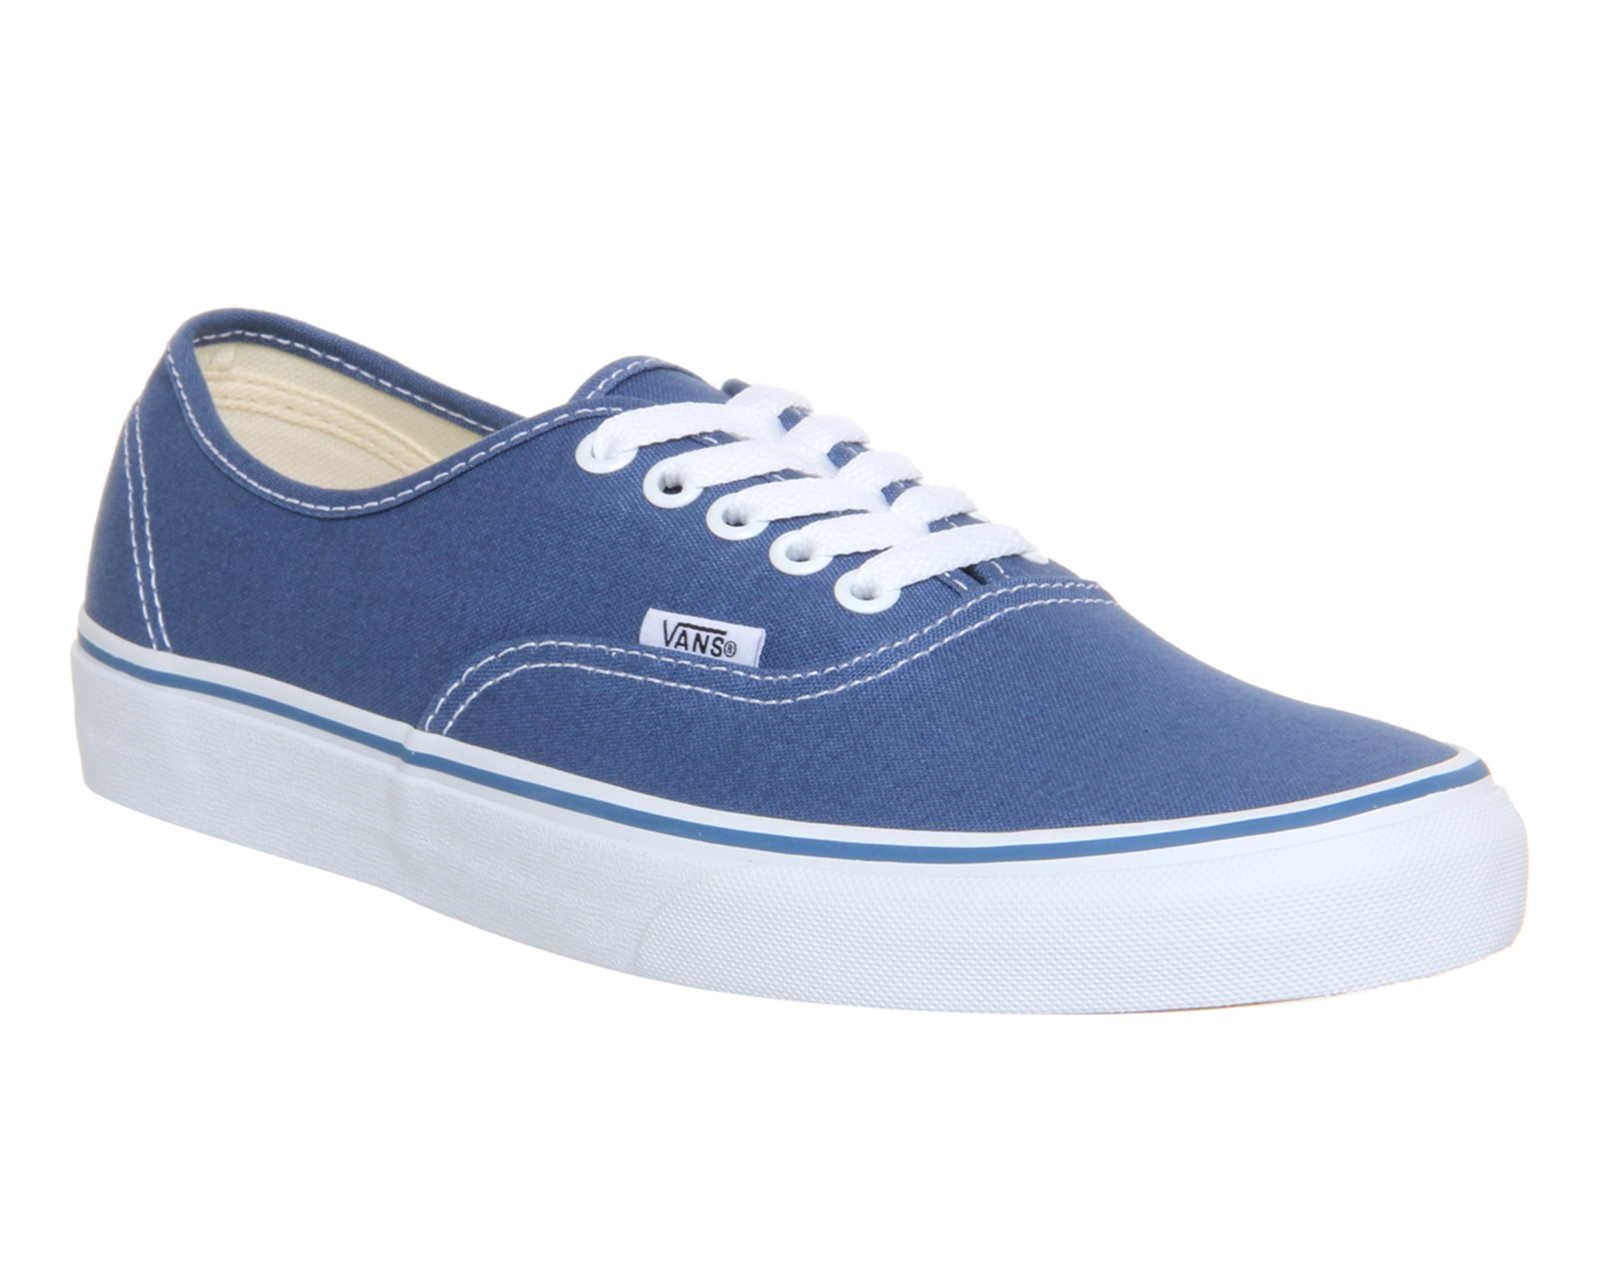 bcb714e7a Sentinel Mens Vans Authentic Navy Trainers Shoes